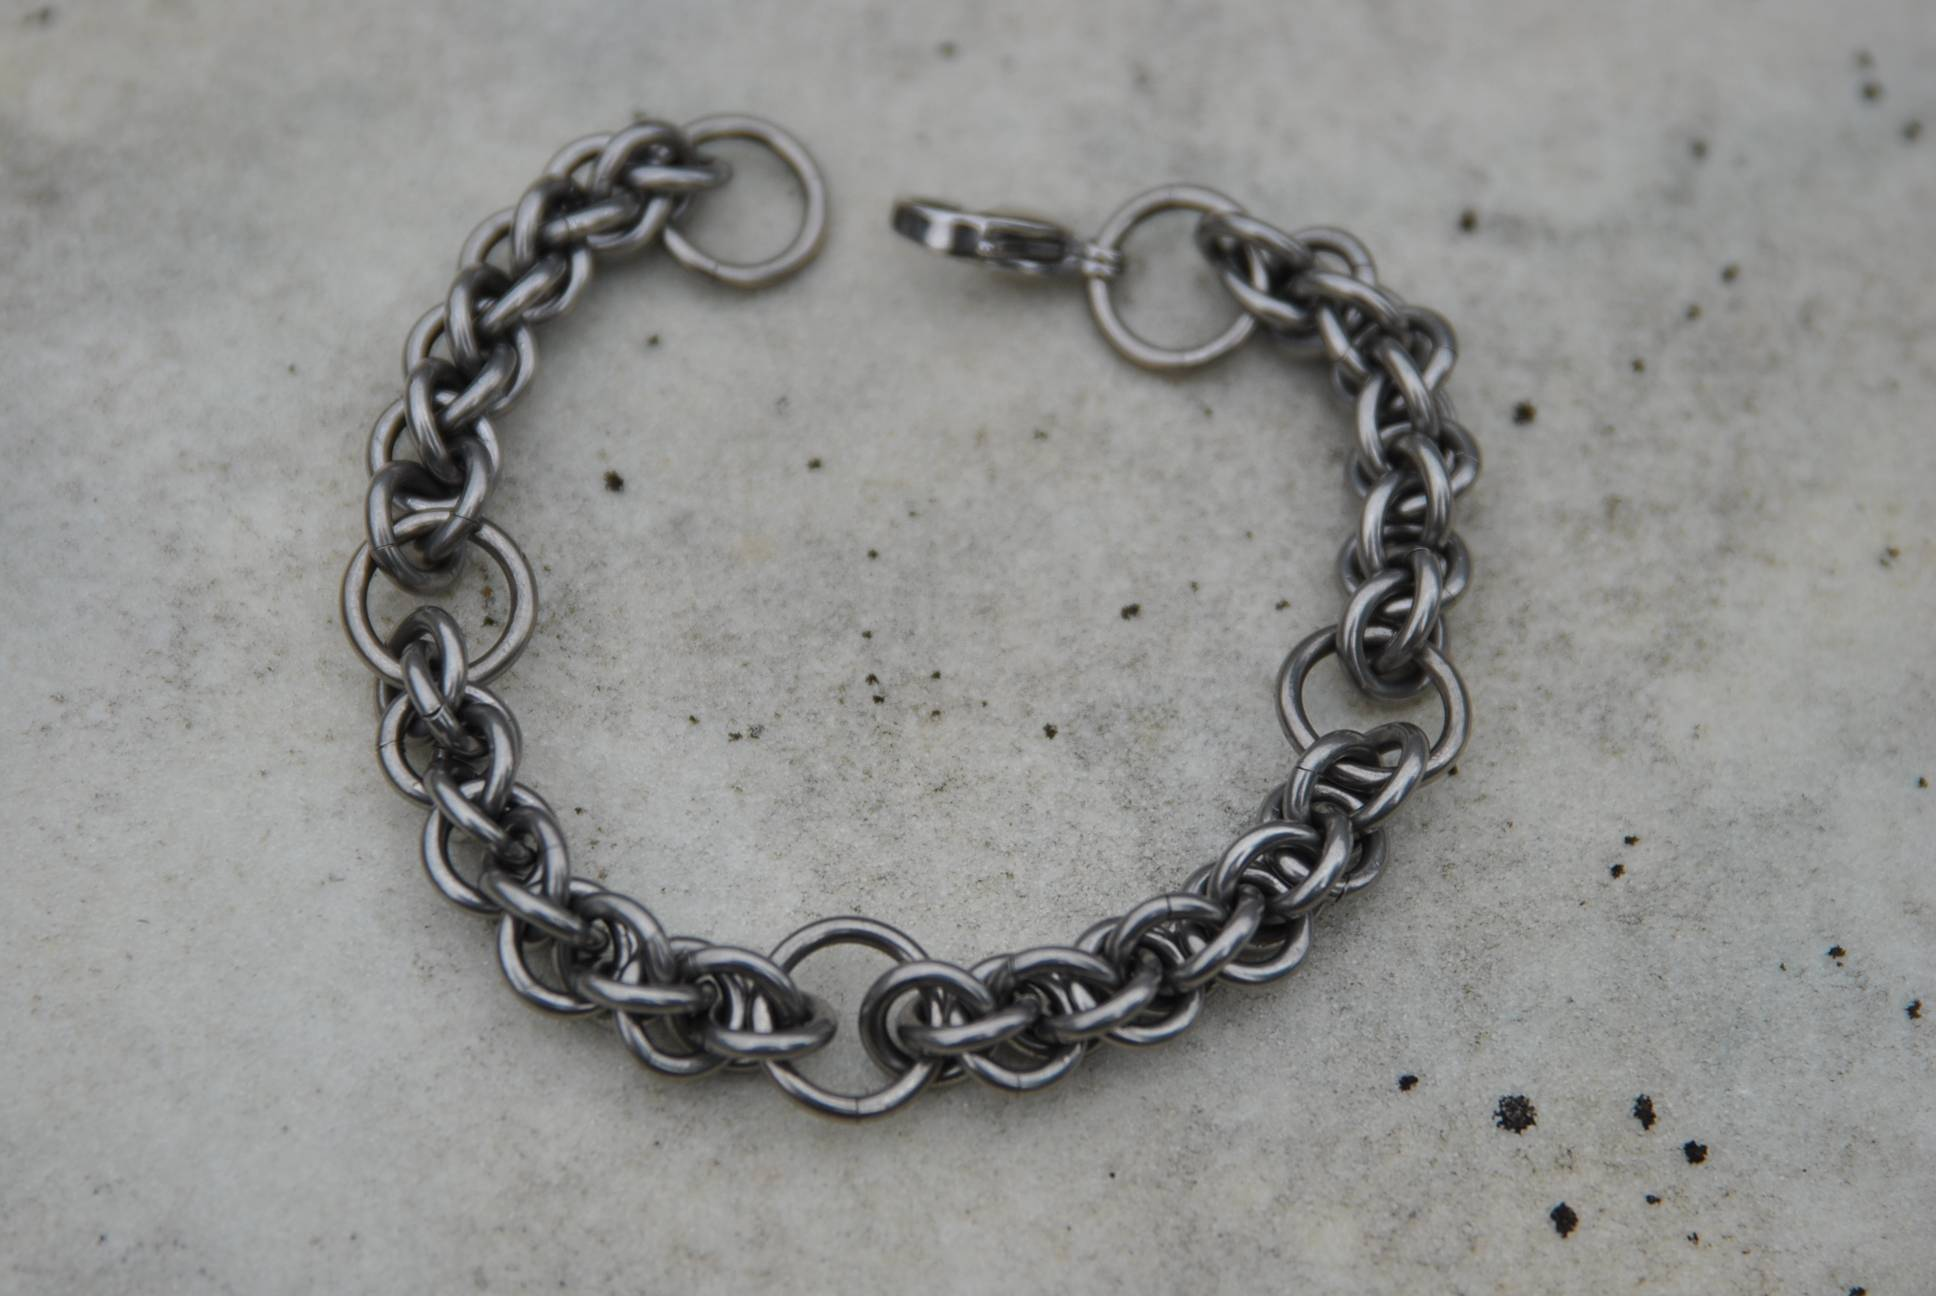 Steel segmented rope chain bracelet